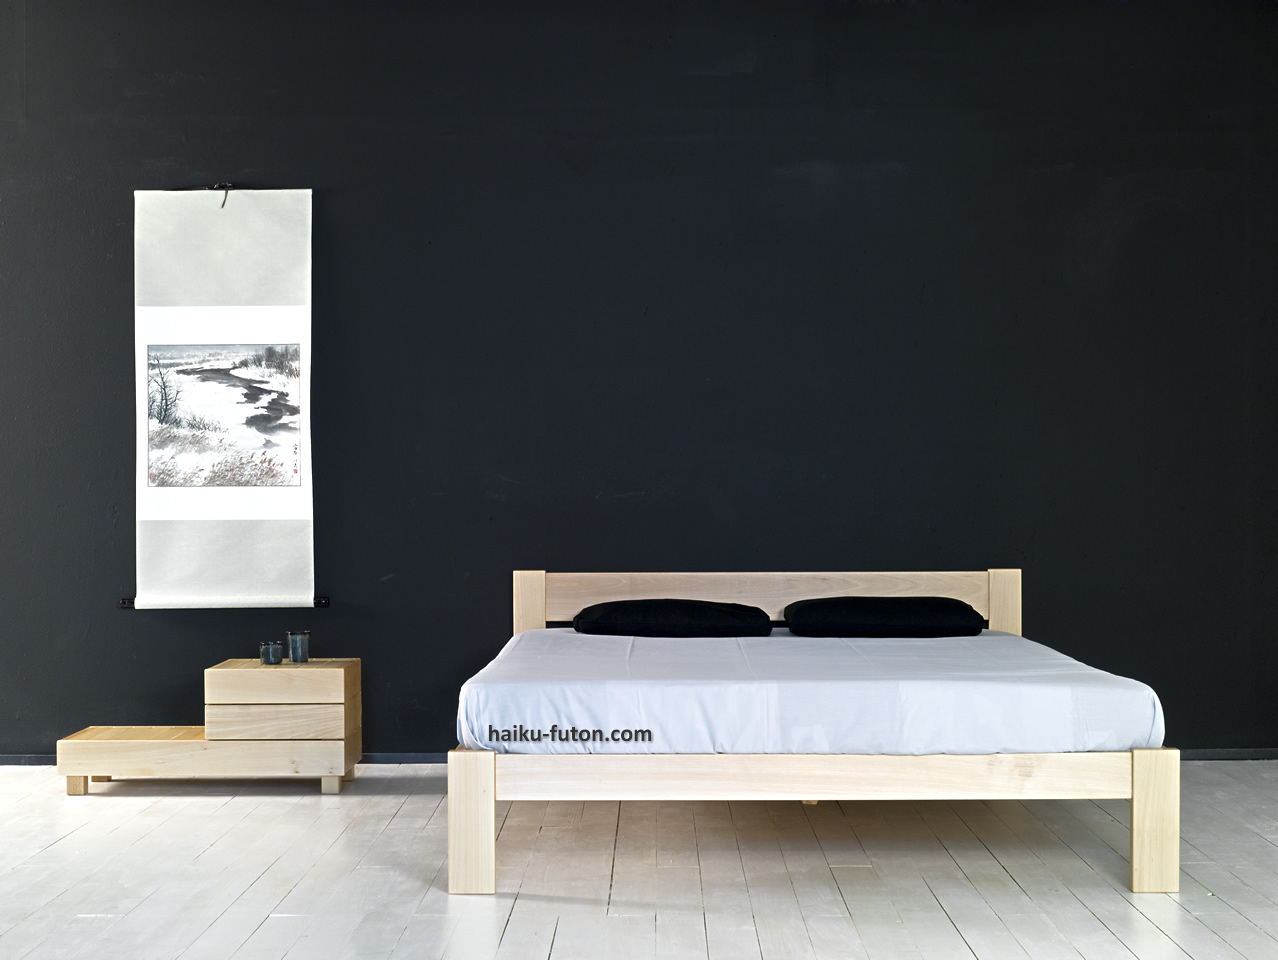 pin base para tatamis tokio futon id 19 de on pinterest. Black Bedroom Furniture Sets. Home Design Ideas